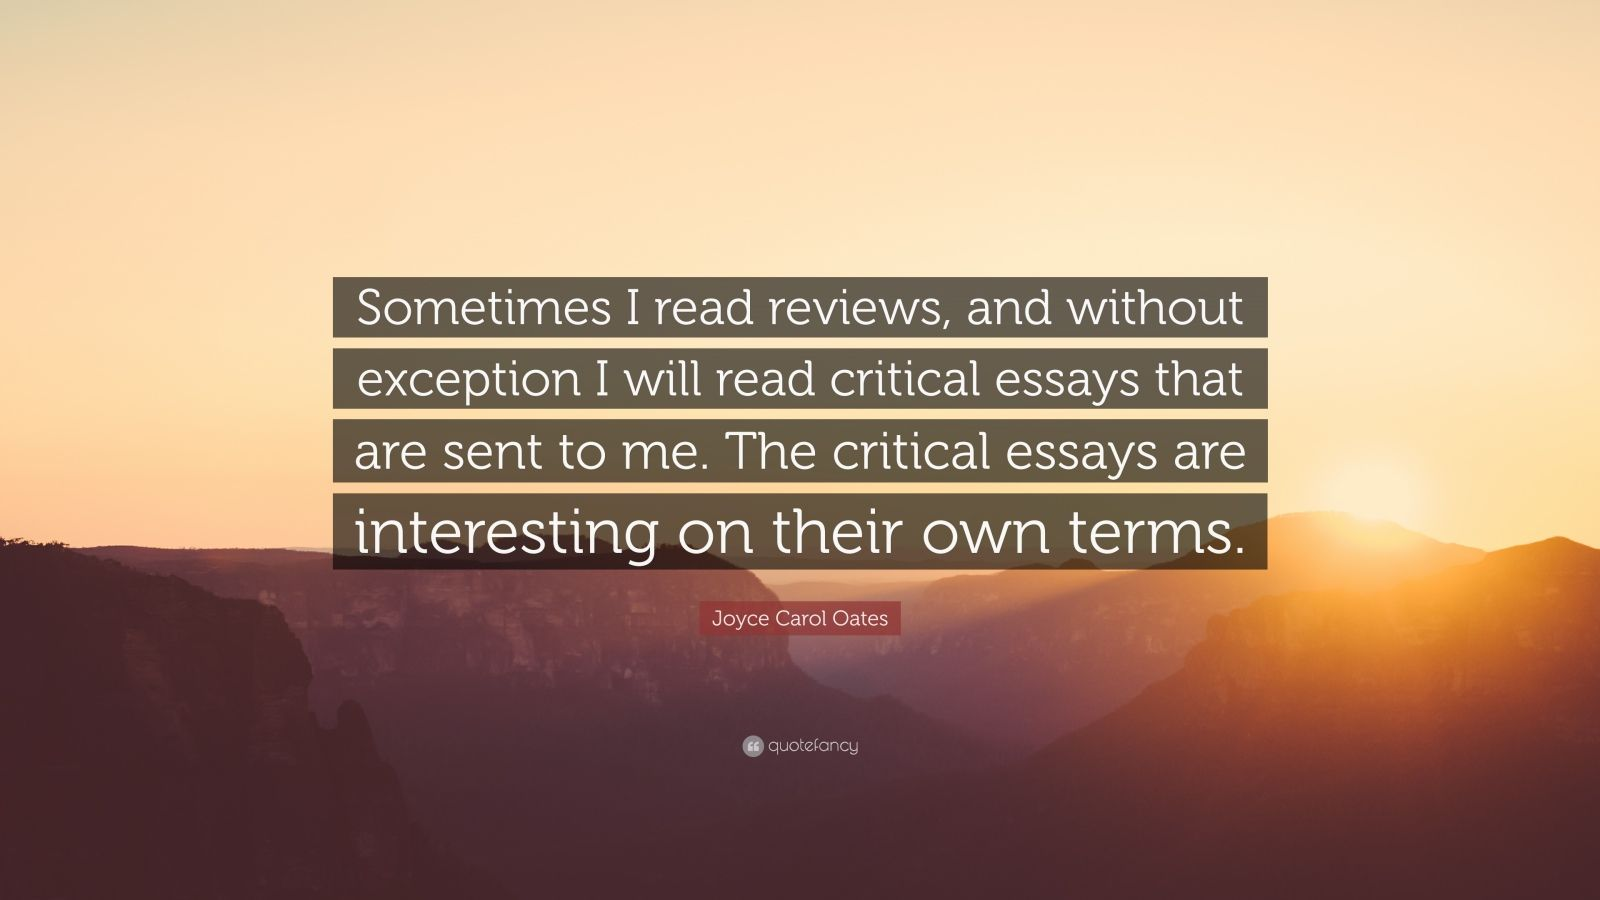 joyce carol oates quotes quotefancy joyce carol oates quote sometimes i reviews and out exception i will